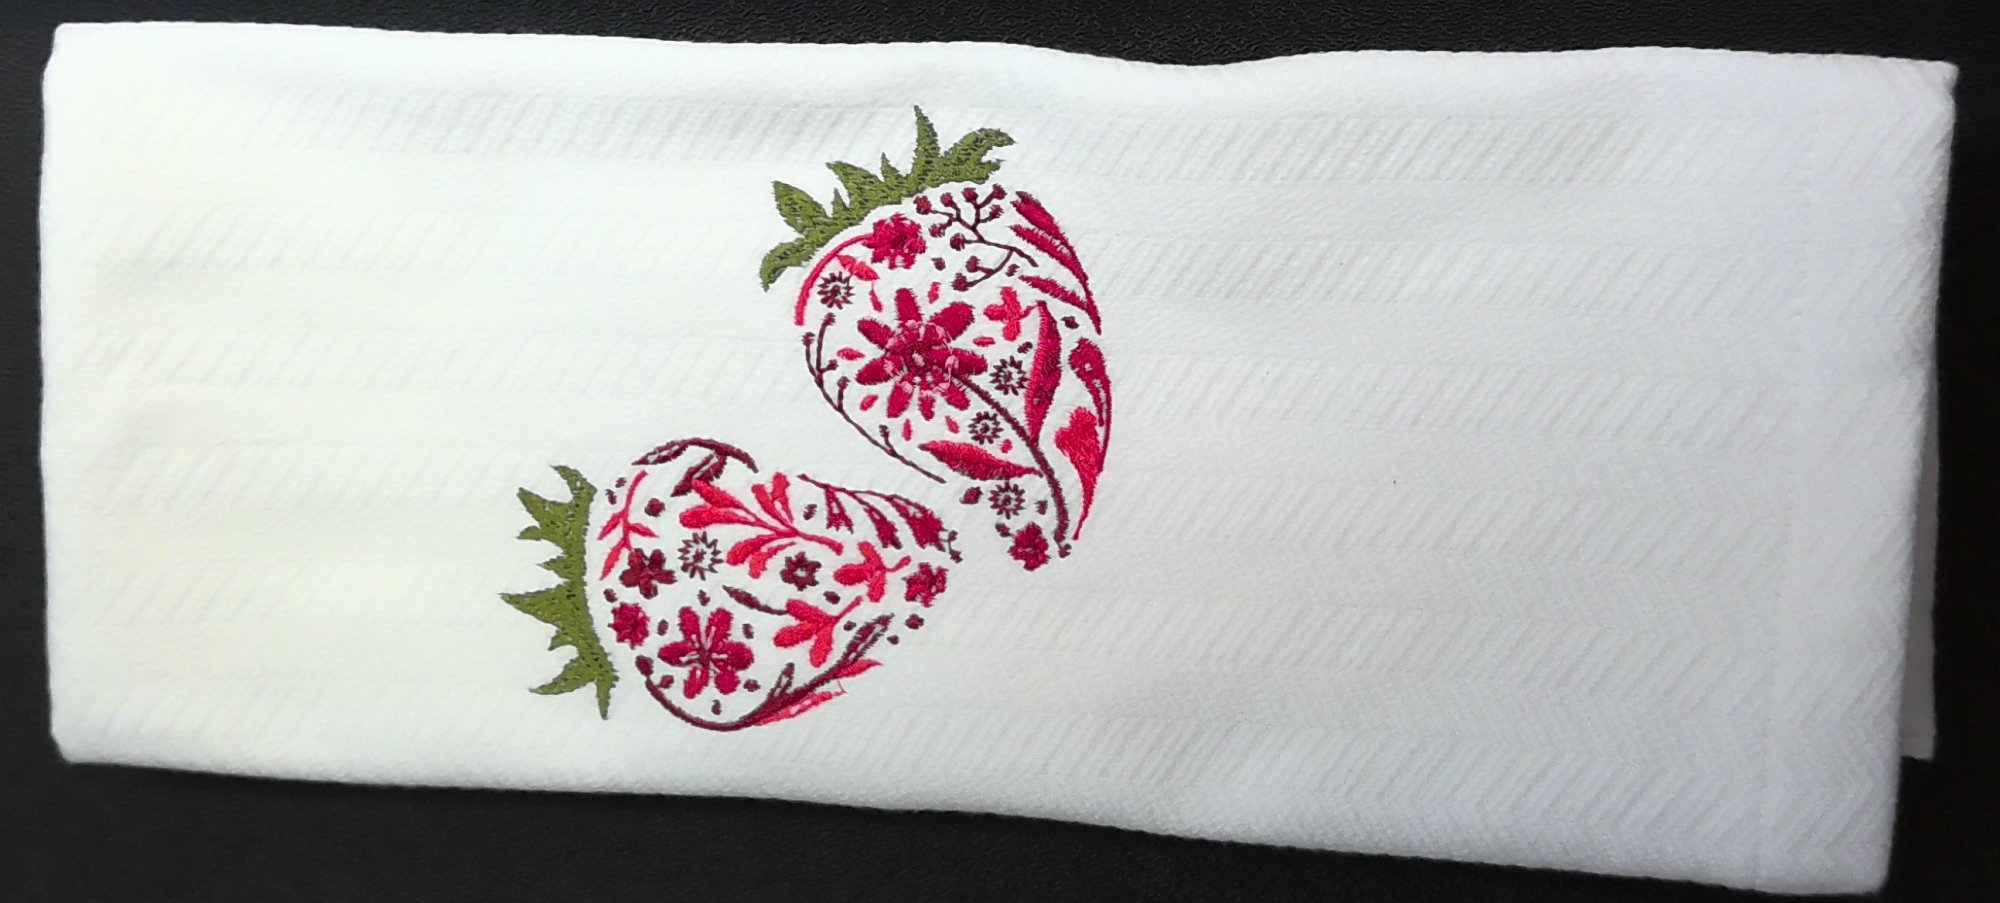 Floral Fruit Towel embroidered with Strawberries